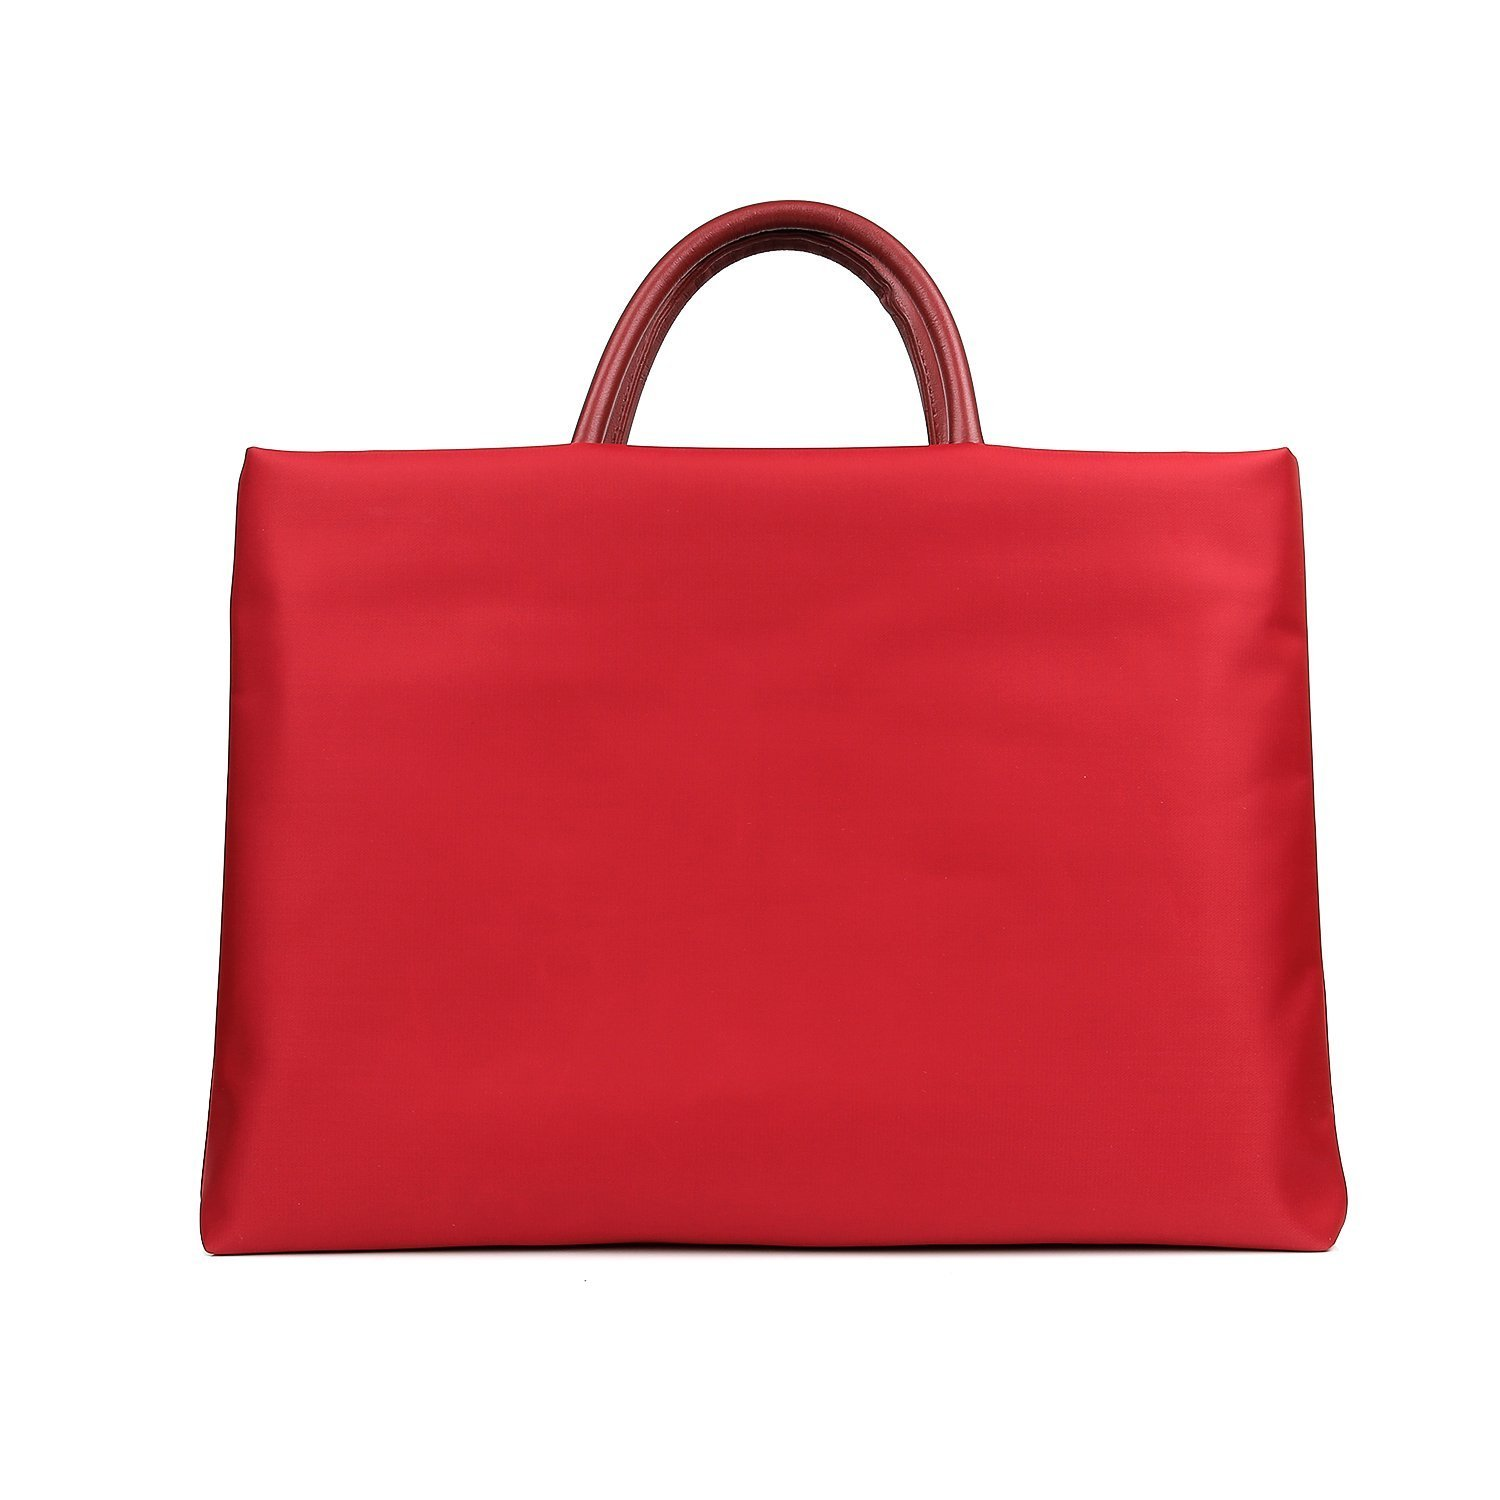 Women Laptop Tote Bag, Raydem Nylon Purse for Laptops under 15.6'' - Waterproof Laptop Handbag & Ideal Briefcase for Work Bussiness Travel (Red)